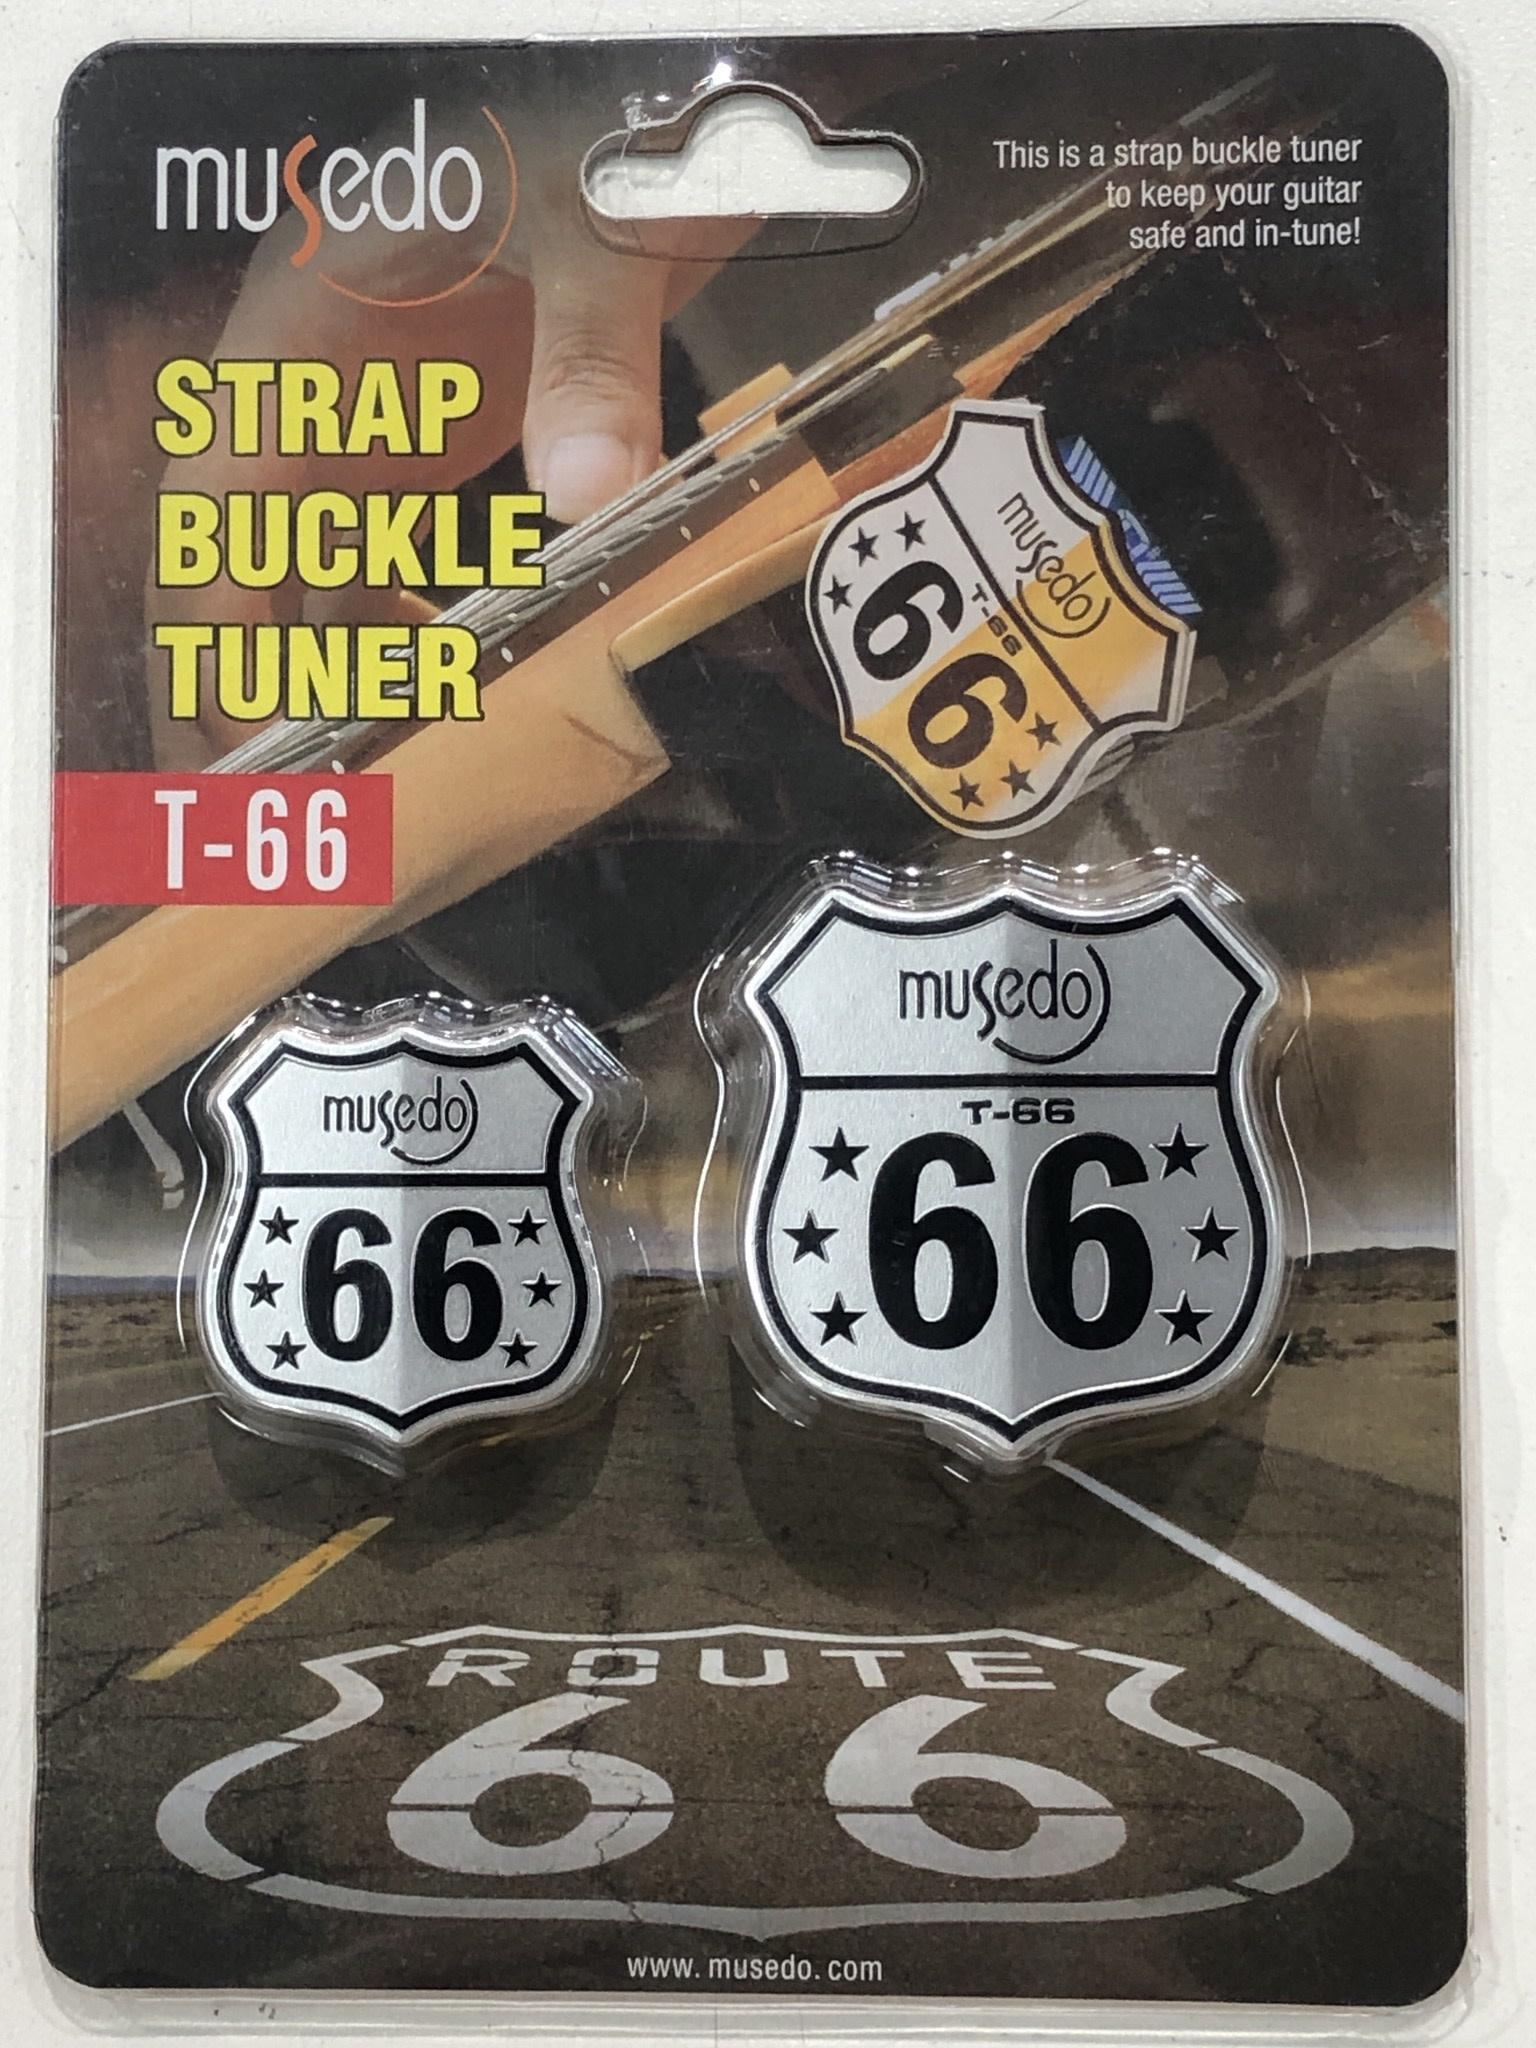 Musedo Strap Buckle Tuner T-66-1